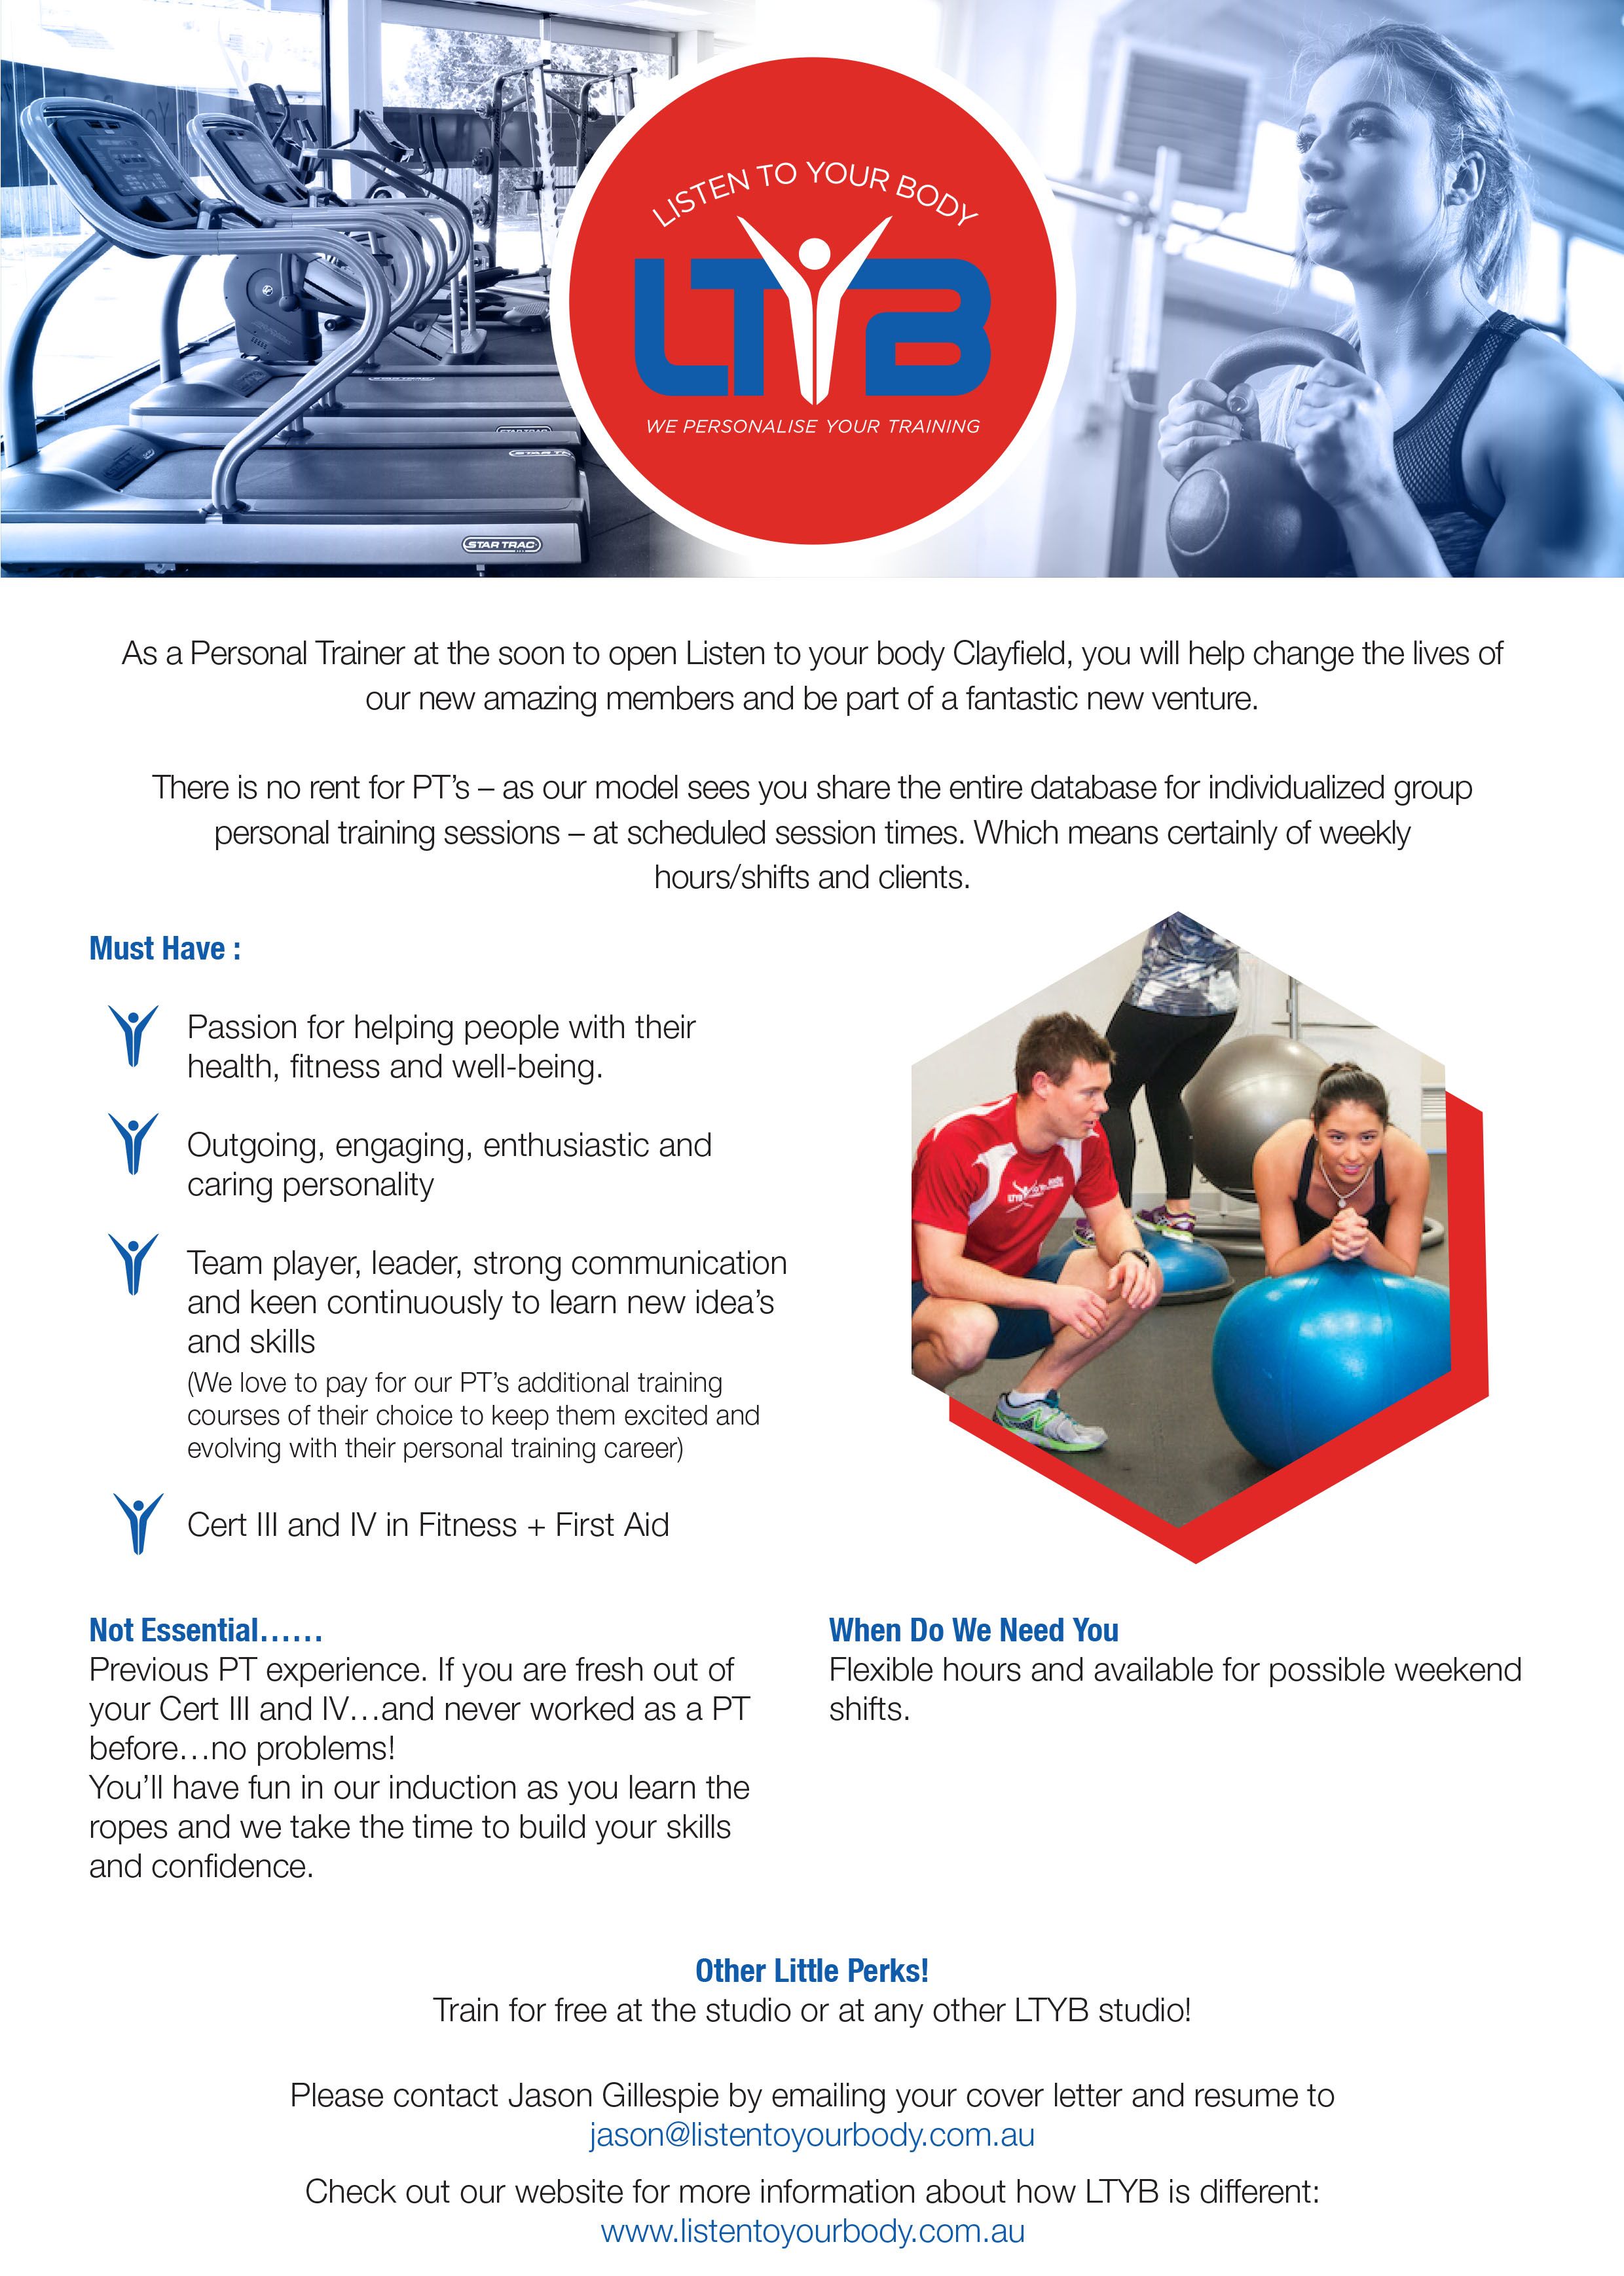 Onfit Job Opportunity - Listen to your Body Clayfield